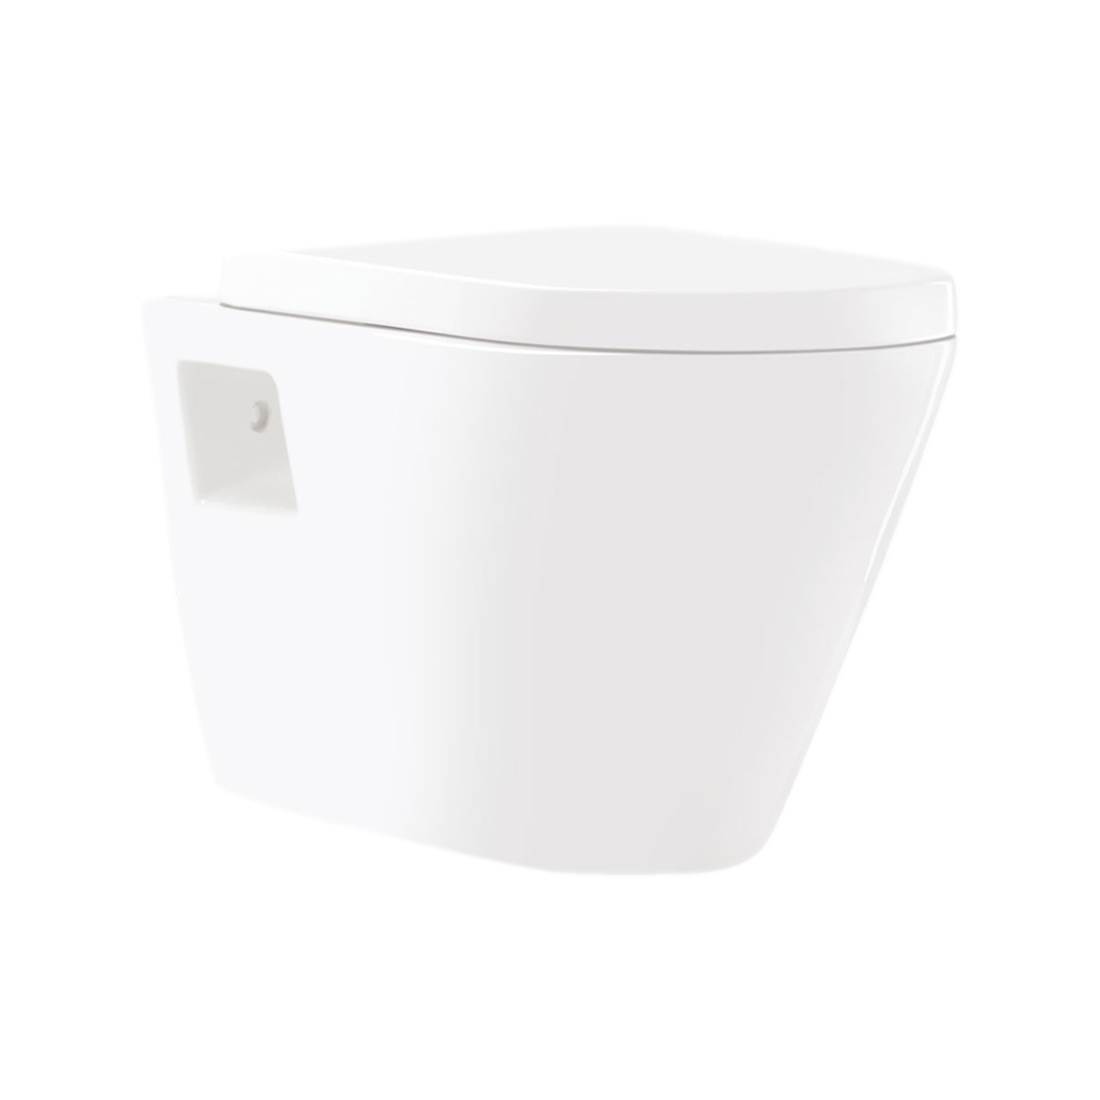 Kerovit Abby KB018 Wall Hung European Water Closet With Seat Cover